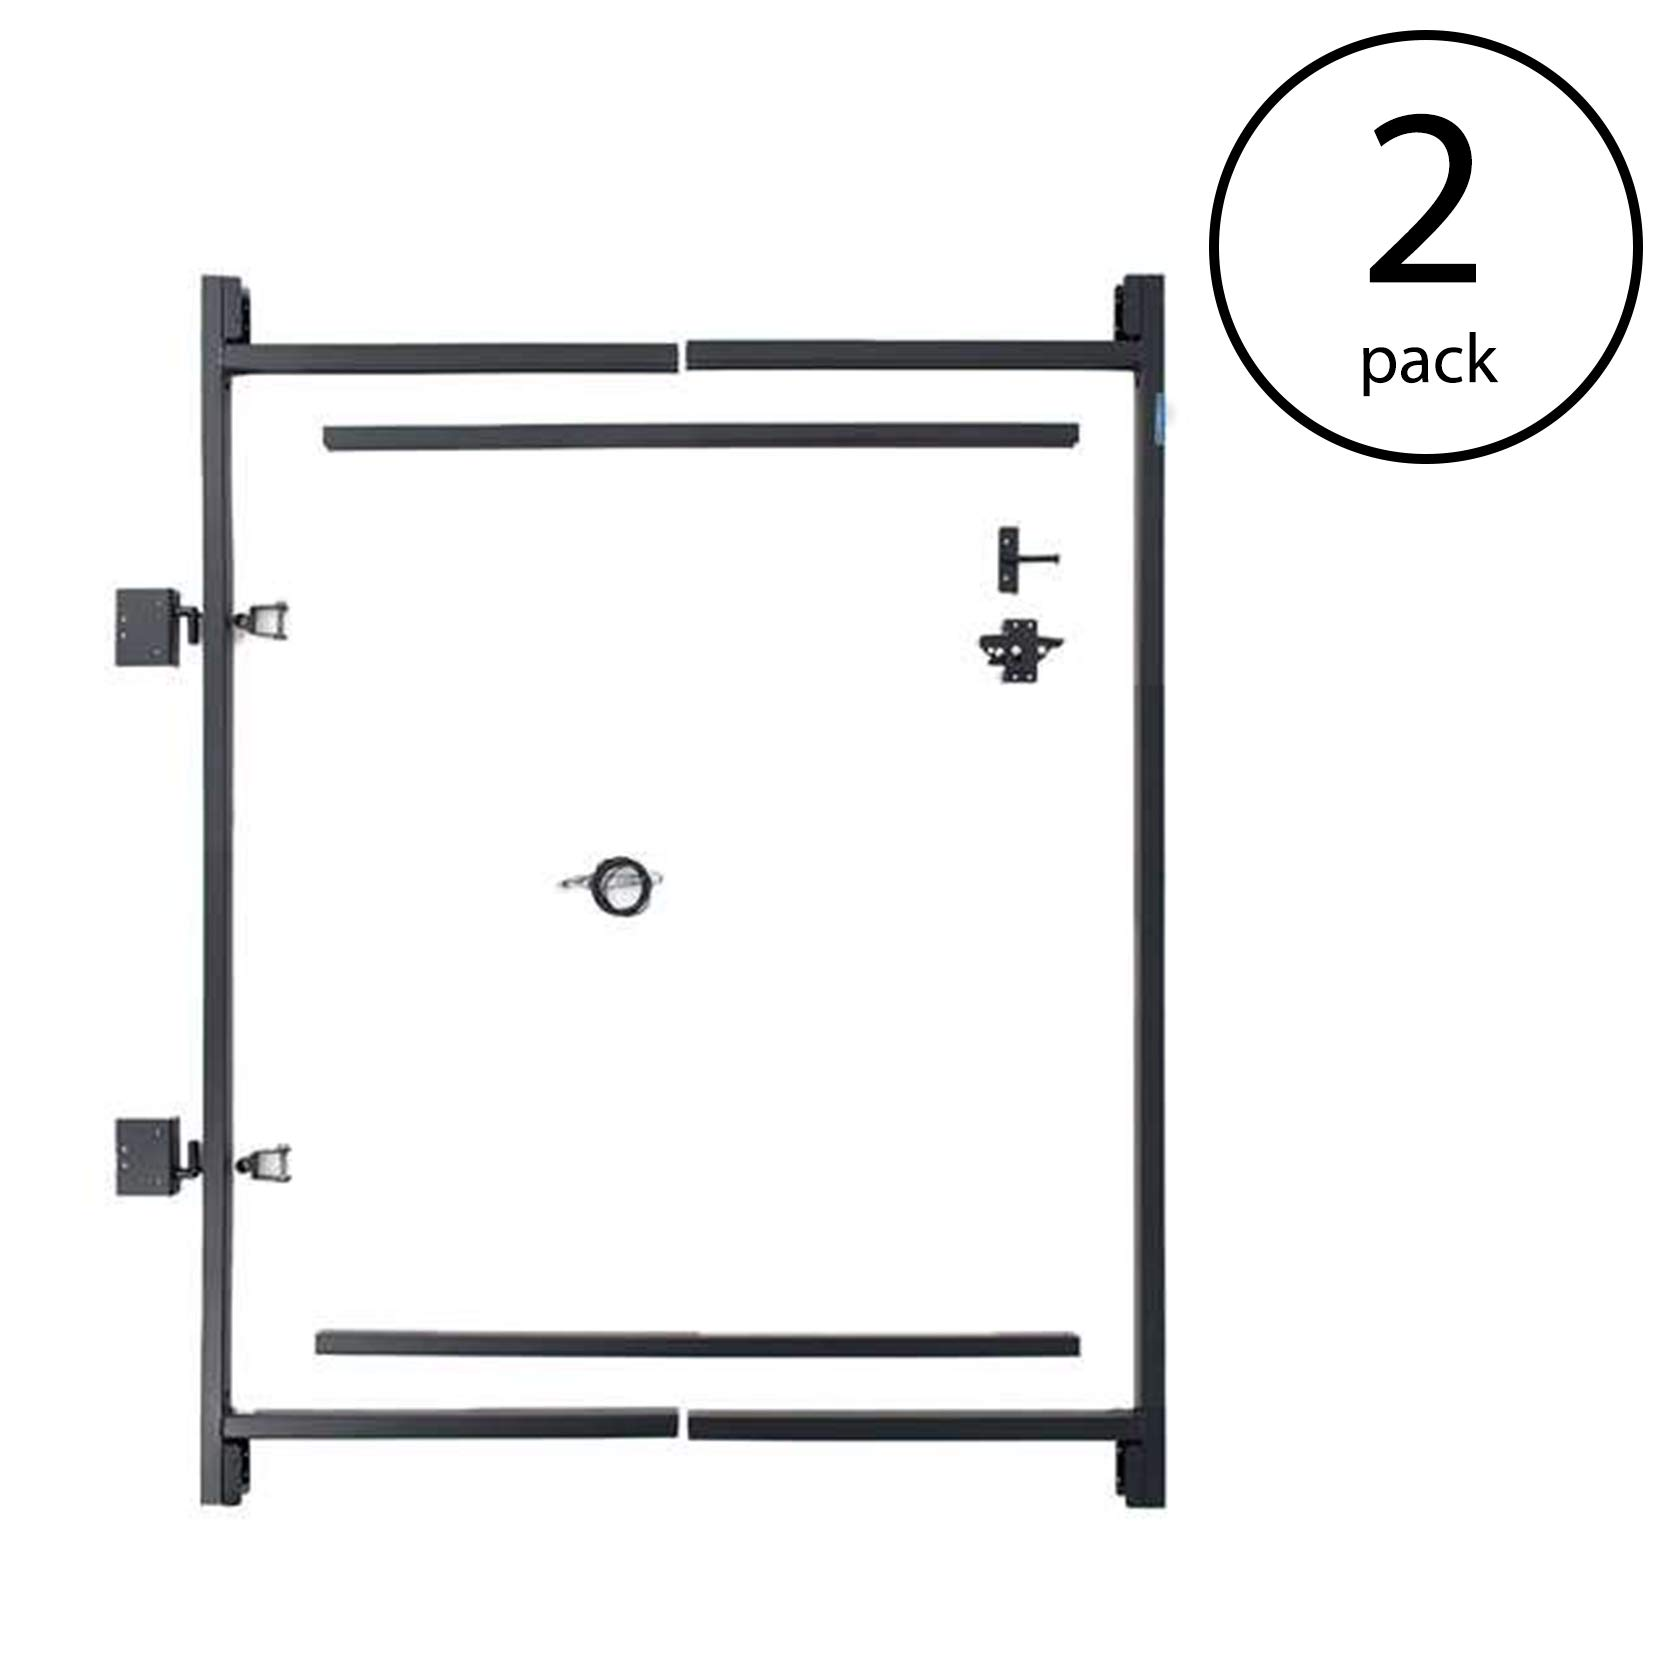 Adjust-A-Gate Steel Frame Gate Kit, 36''-60'' Wide Opening Up to 7' High (2 Pack) by Adjust-A-Gate (Image #1)